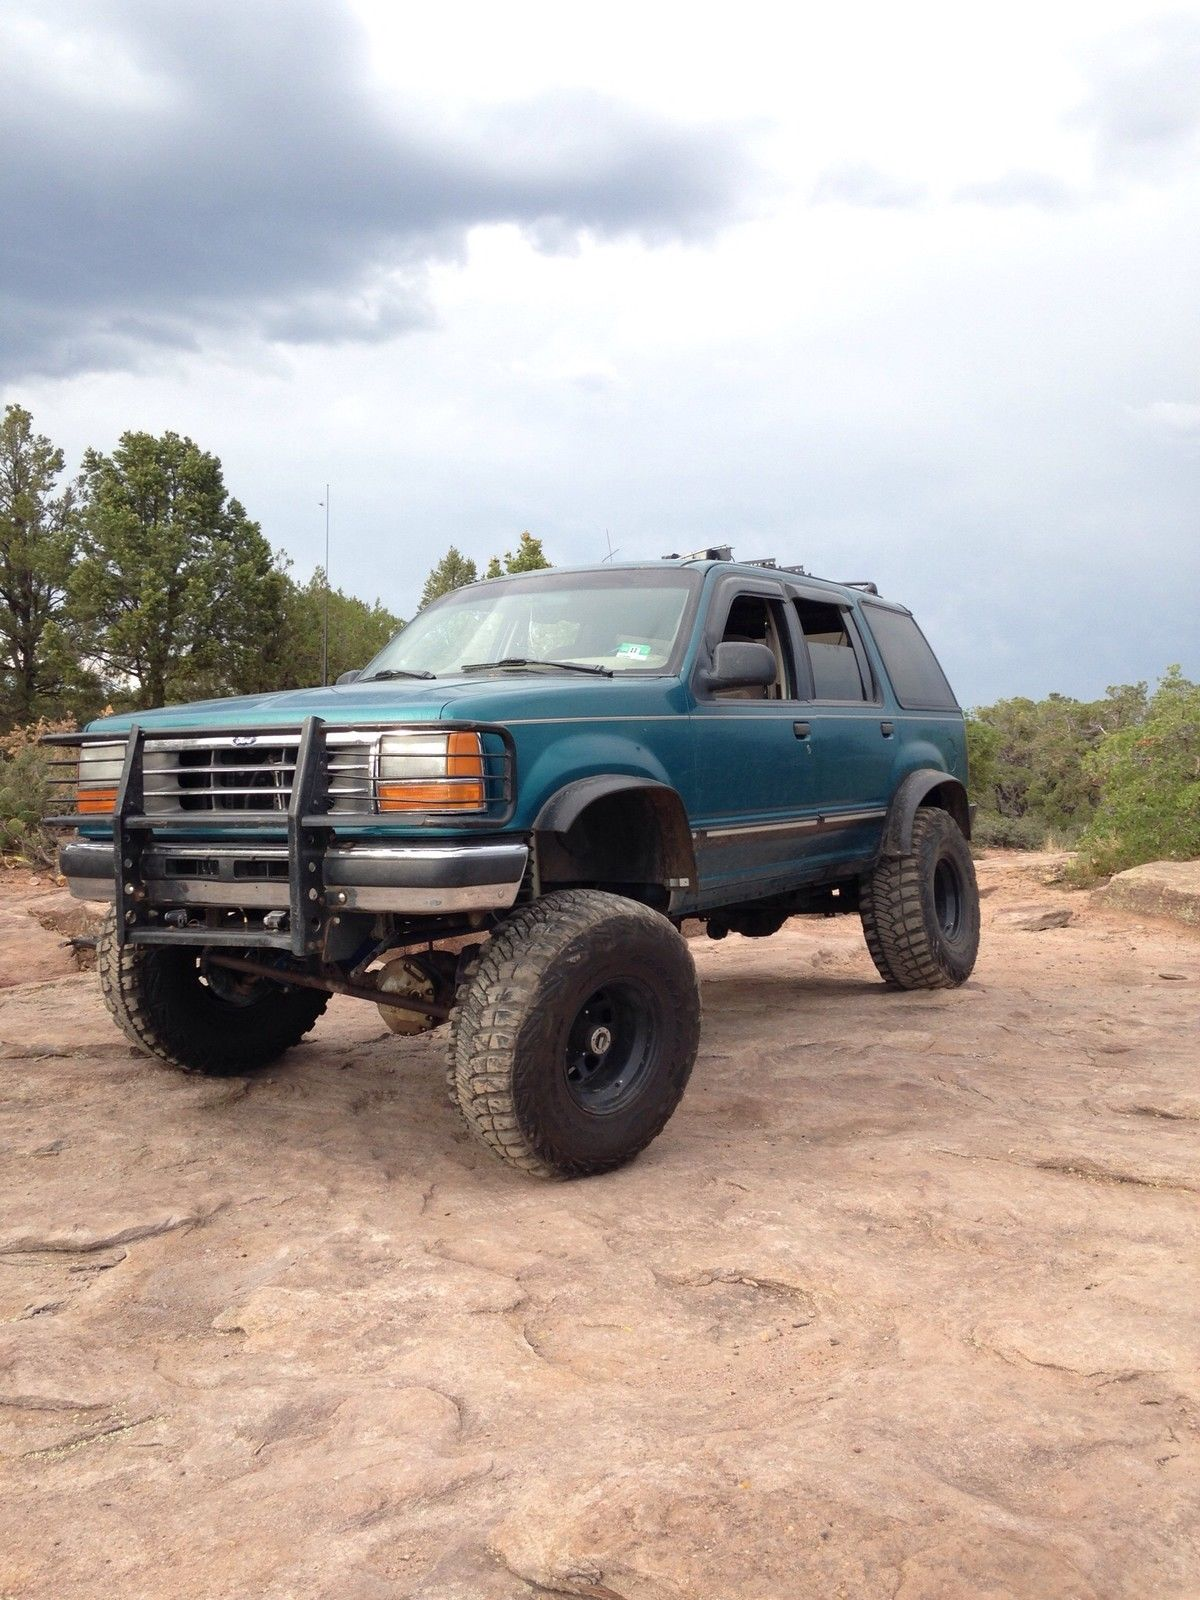 Custom lifted 94 39 ford explorer off road truck classic ford explorer 1994 for sale